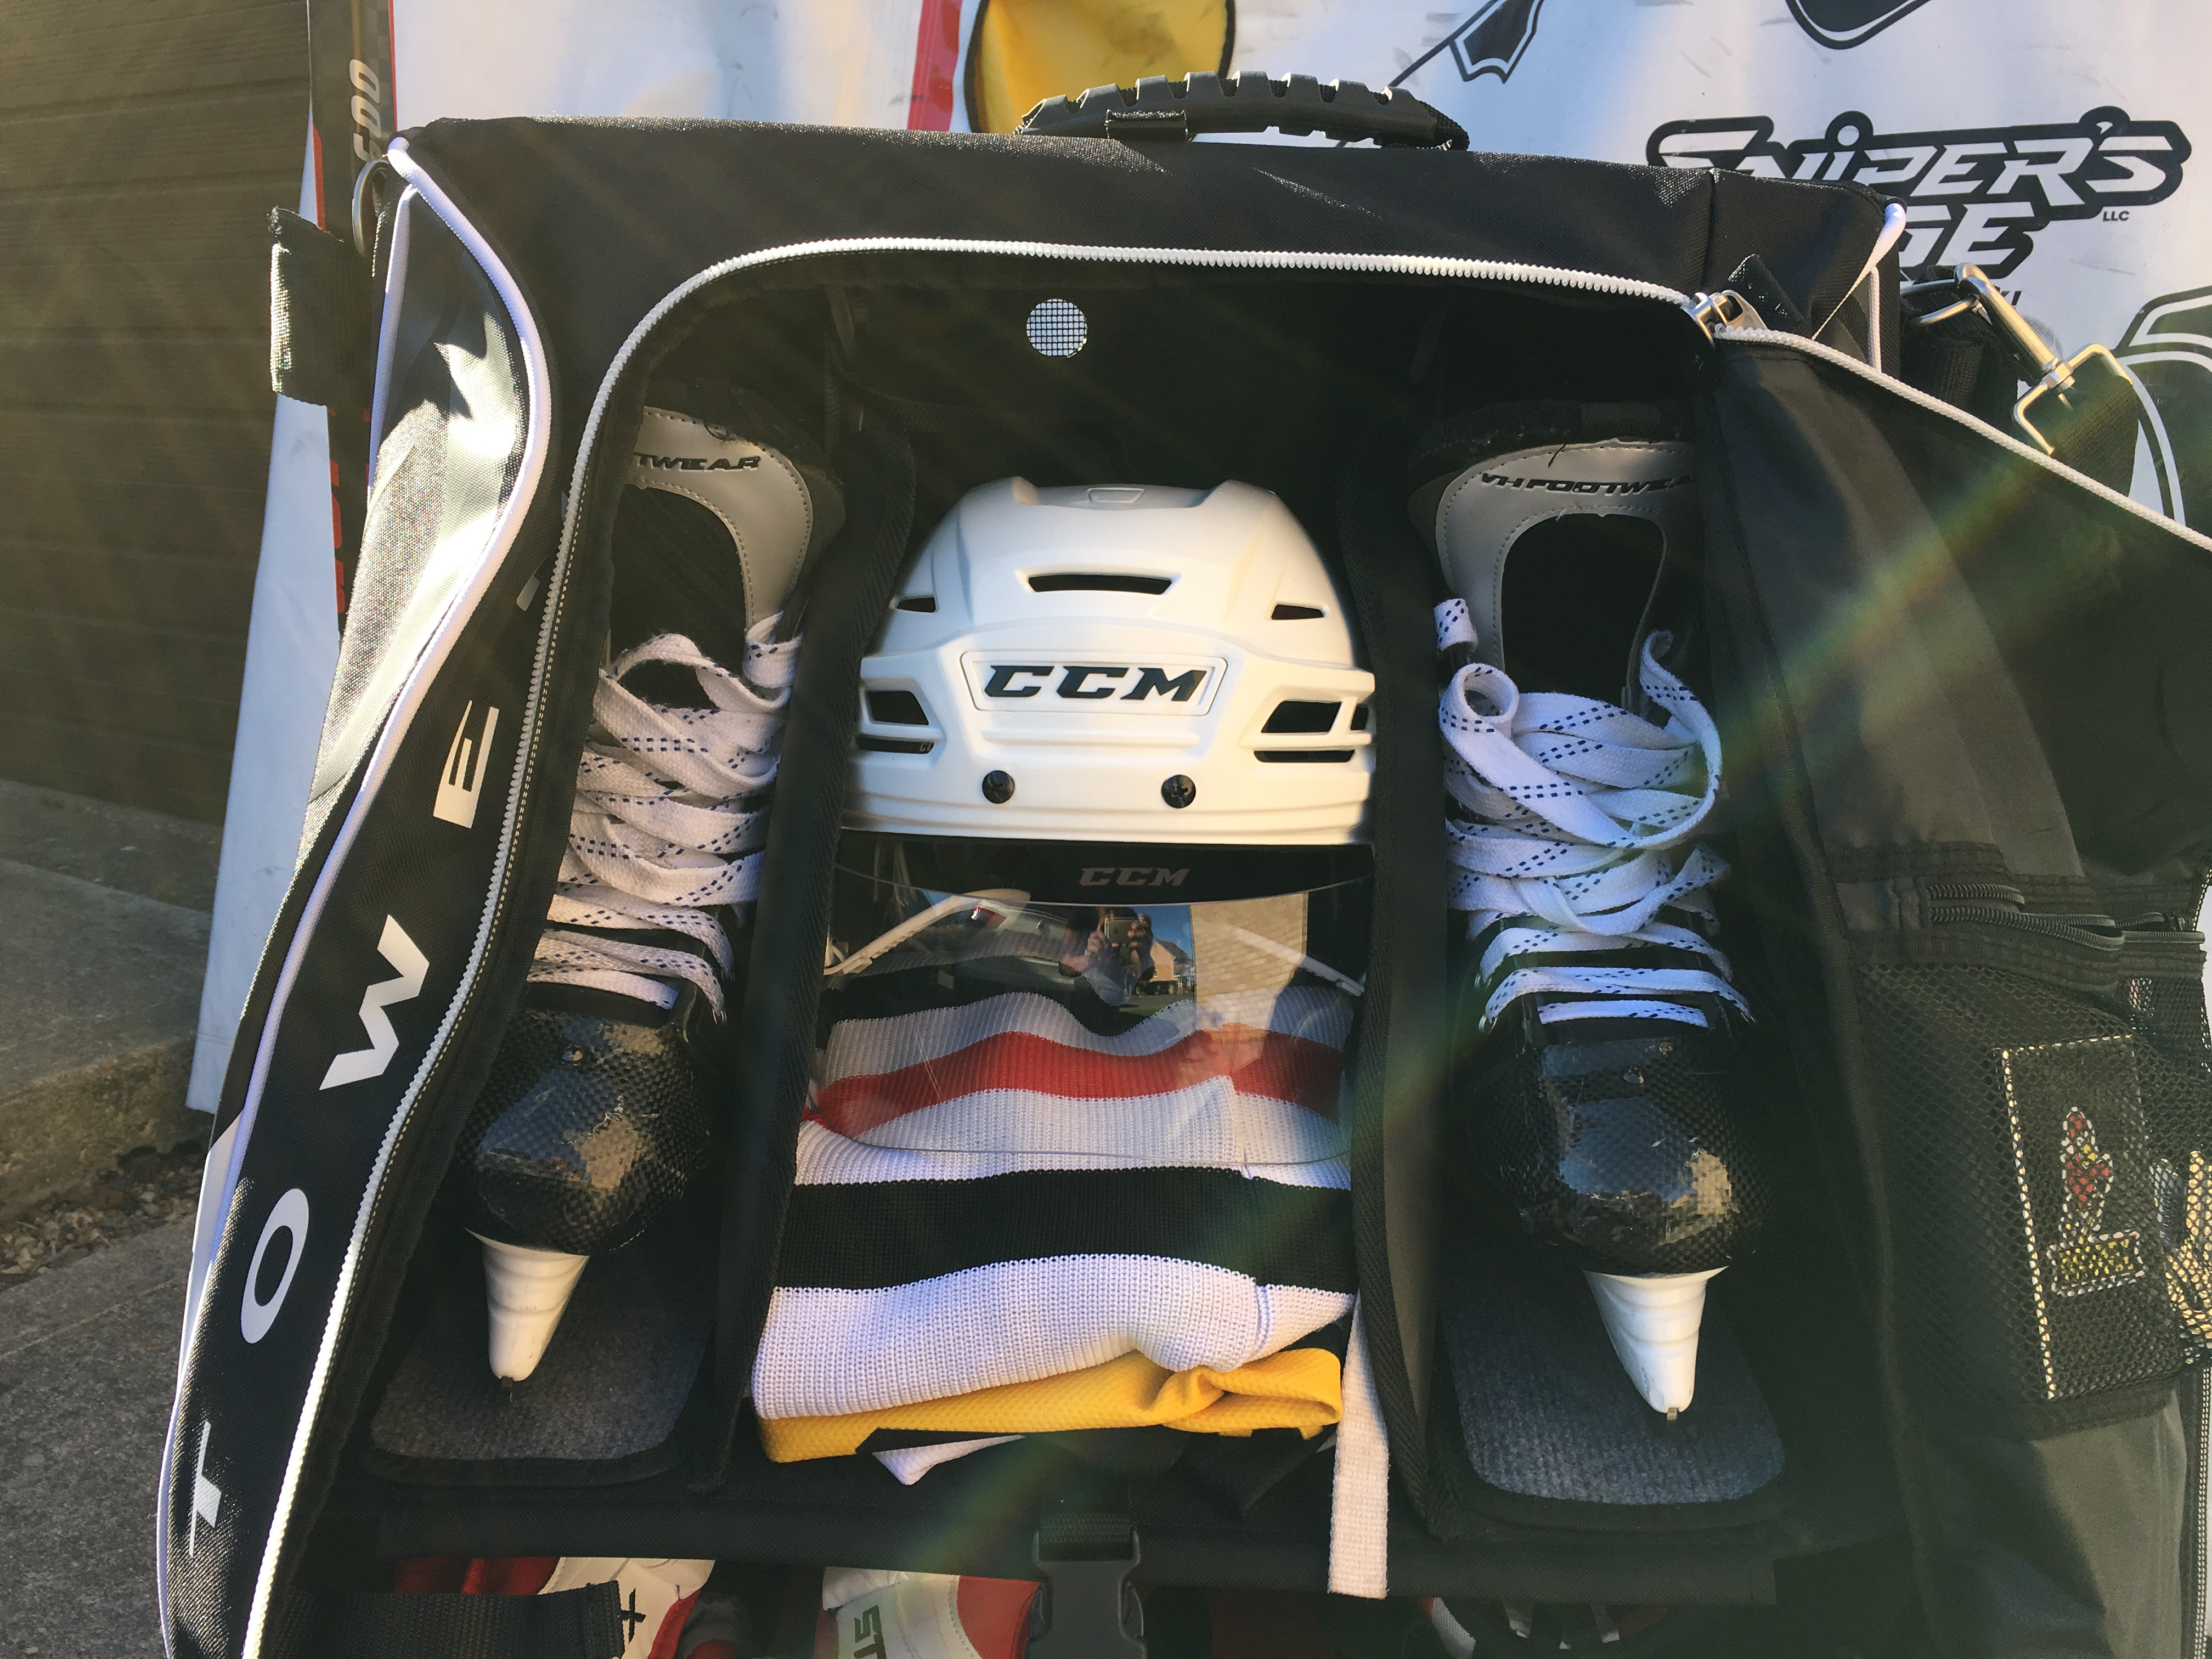 Grit HTSE Tower Hockey bag review9159